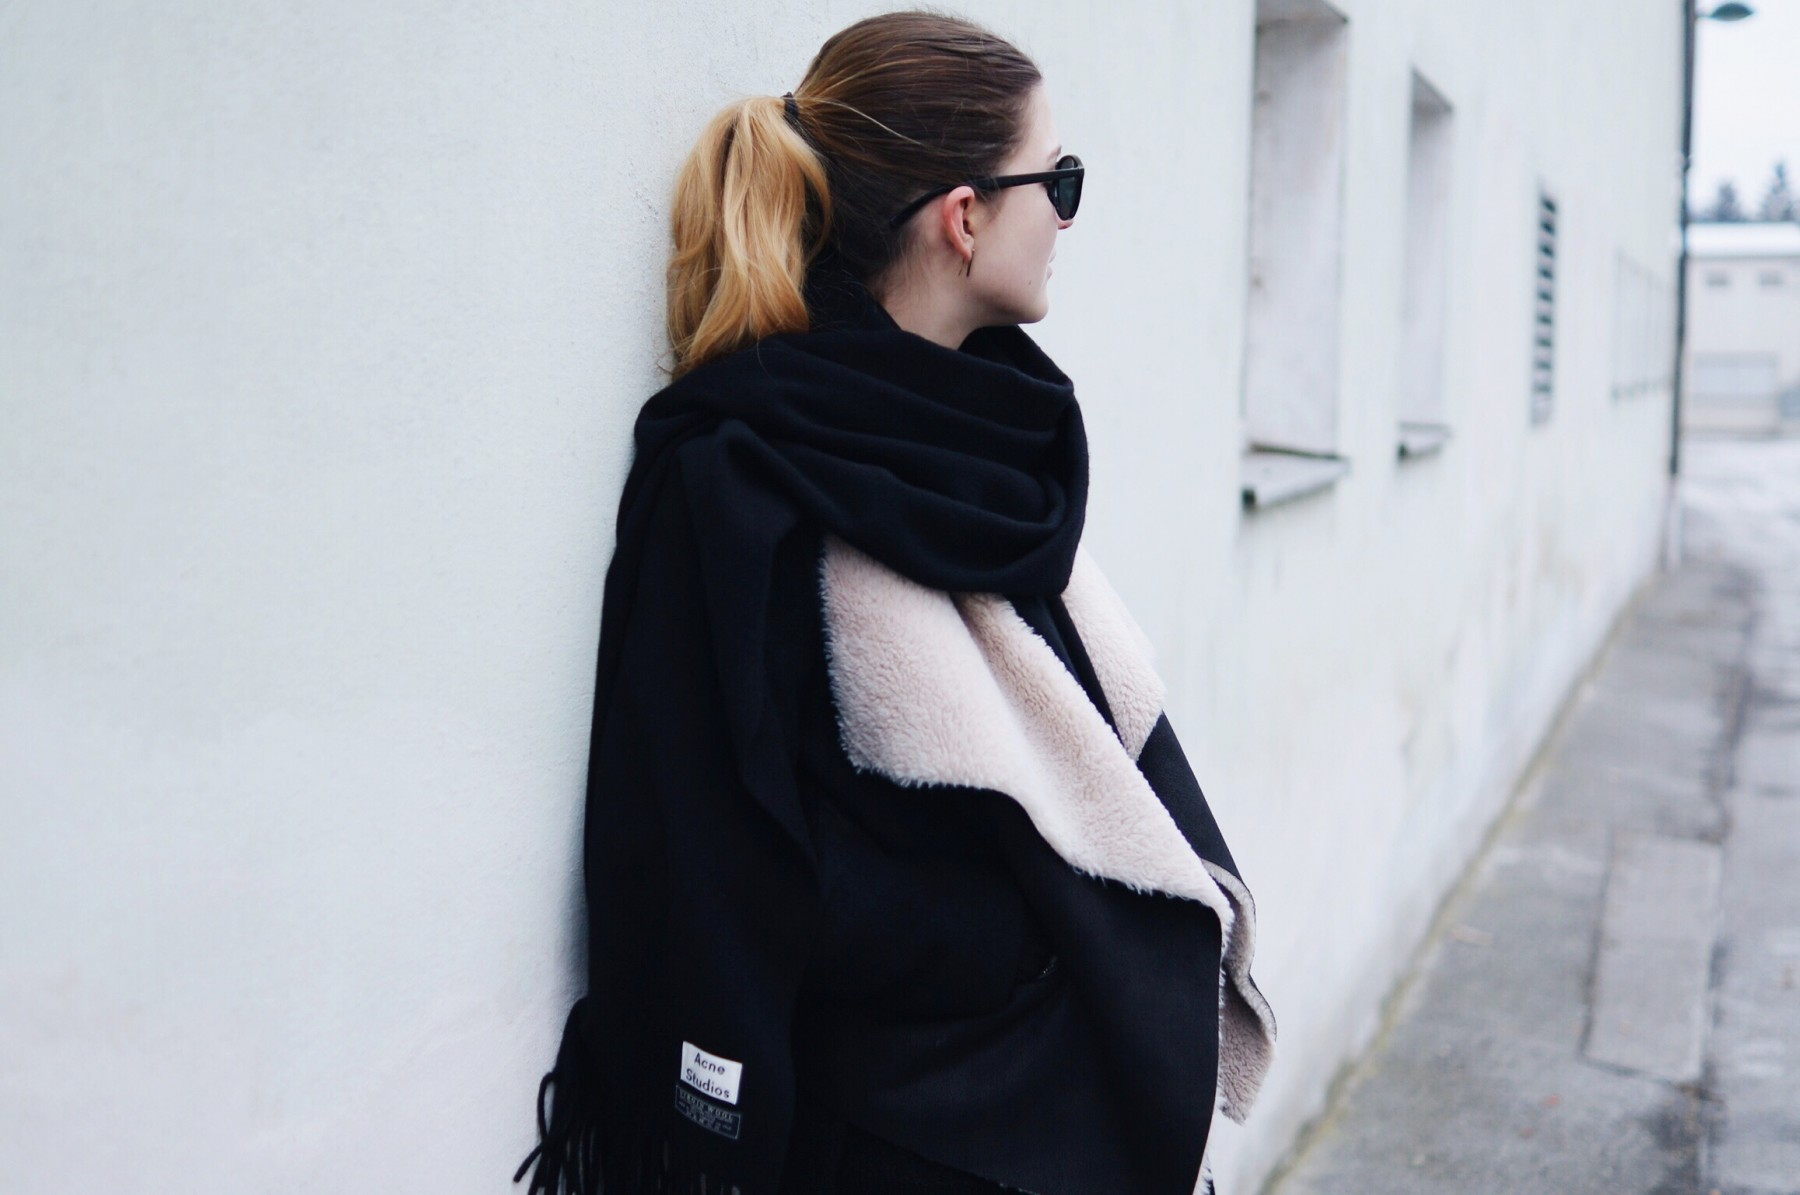 acne_studios_scarf_lambskin_jacket_winter_outfit6